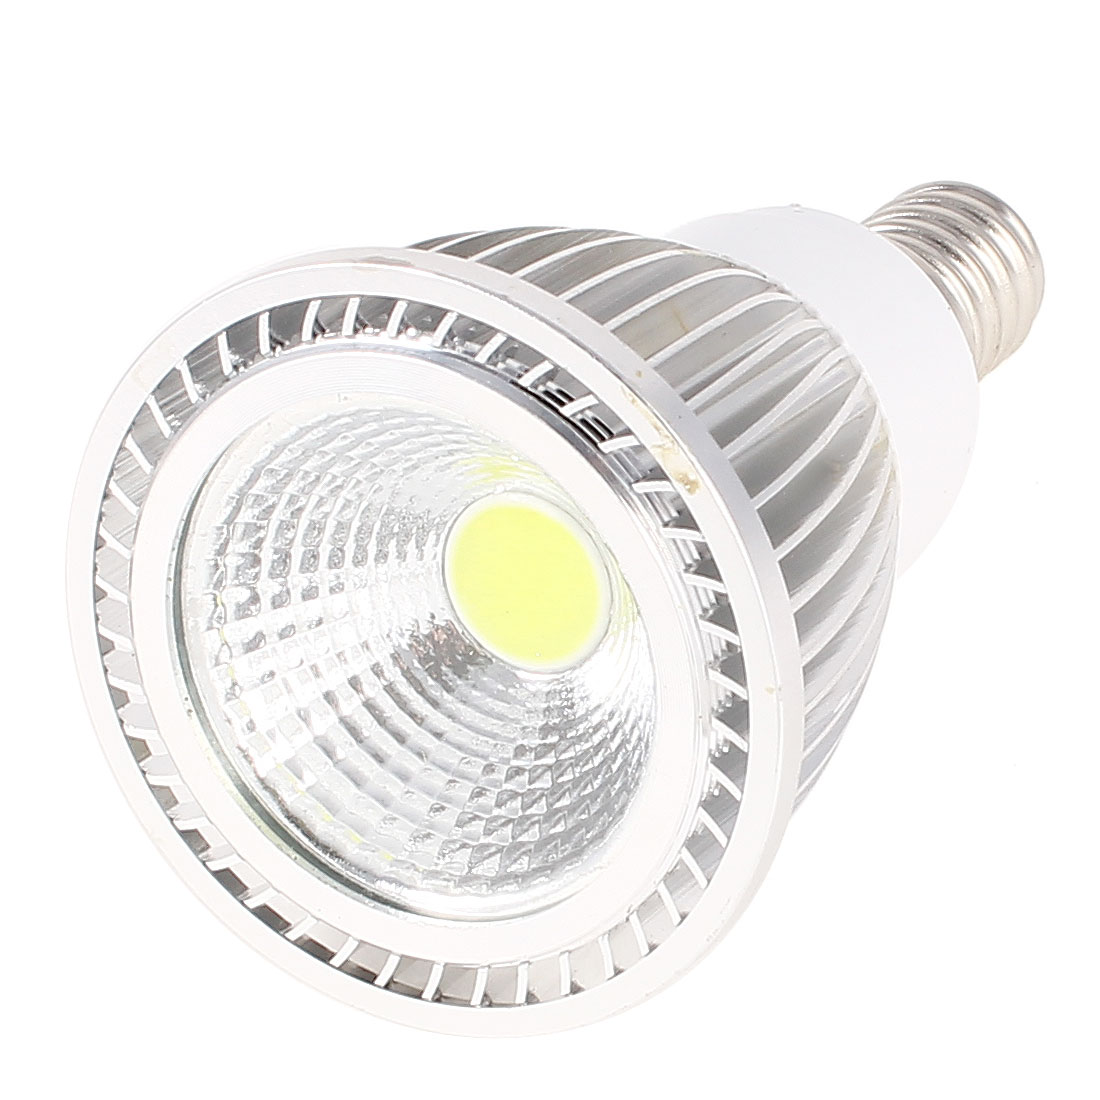 AC 85-265V 5Watt E14 COB White LED Light Energy Saving Ceiling Spotlight Bulb